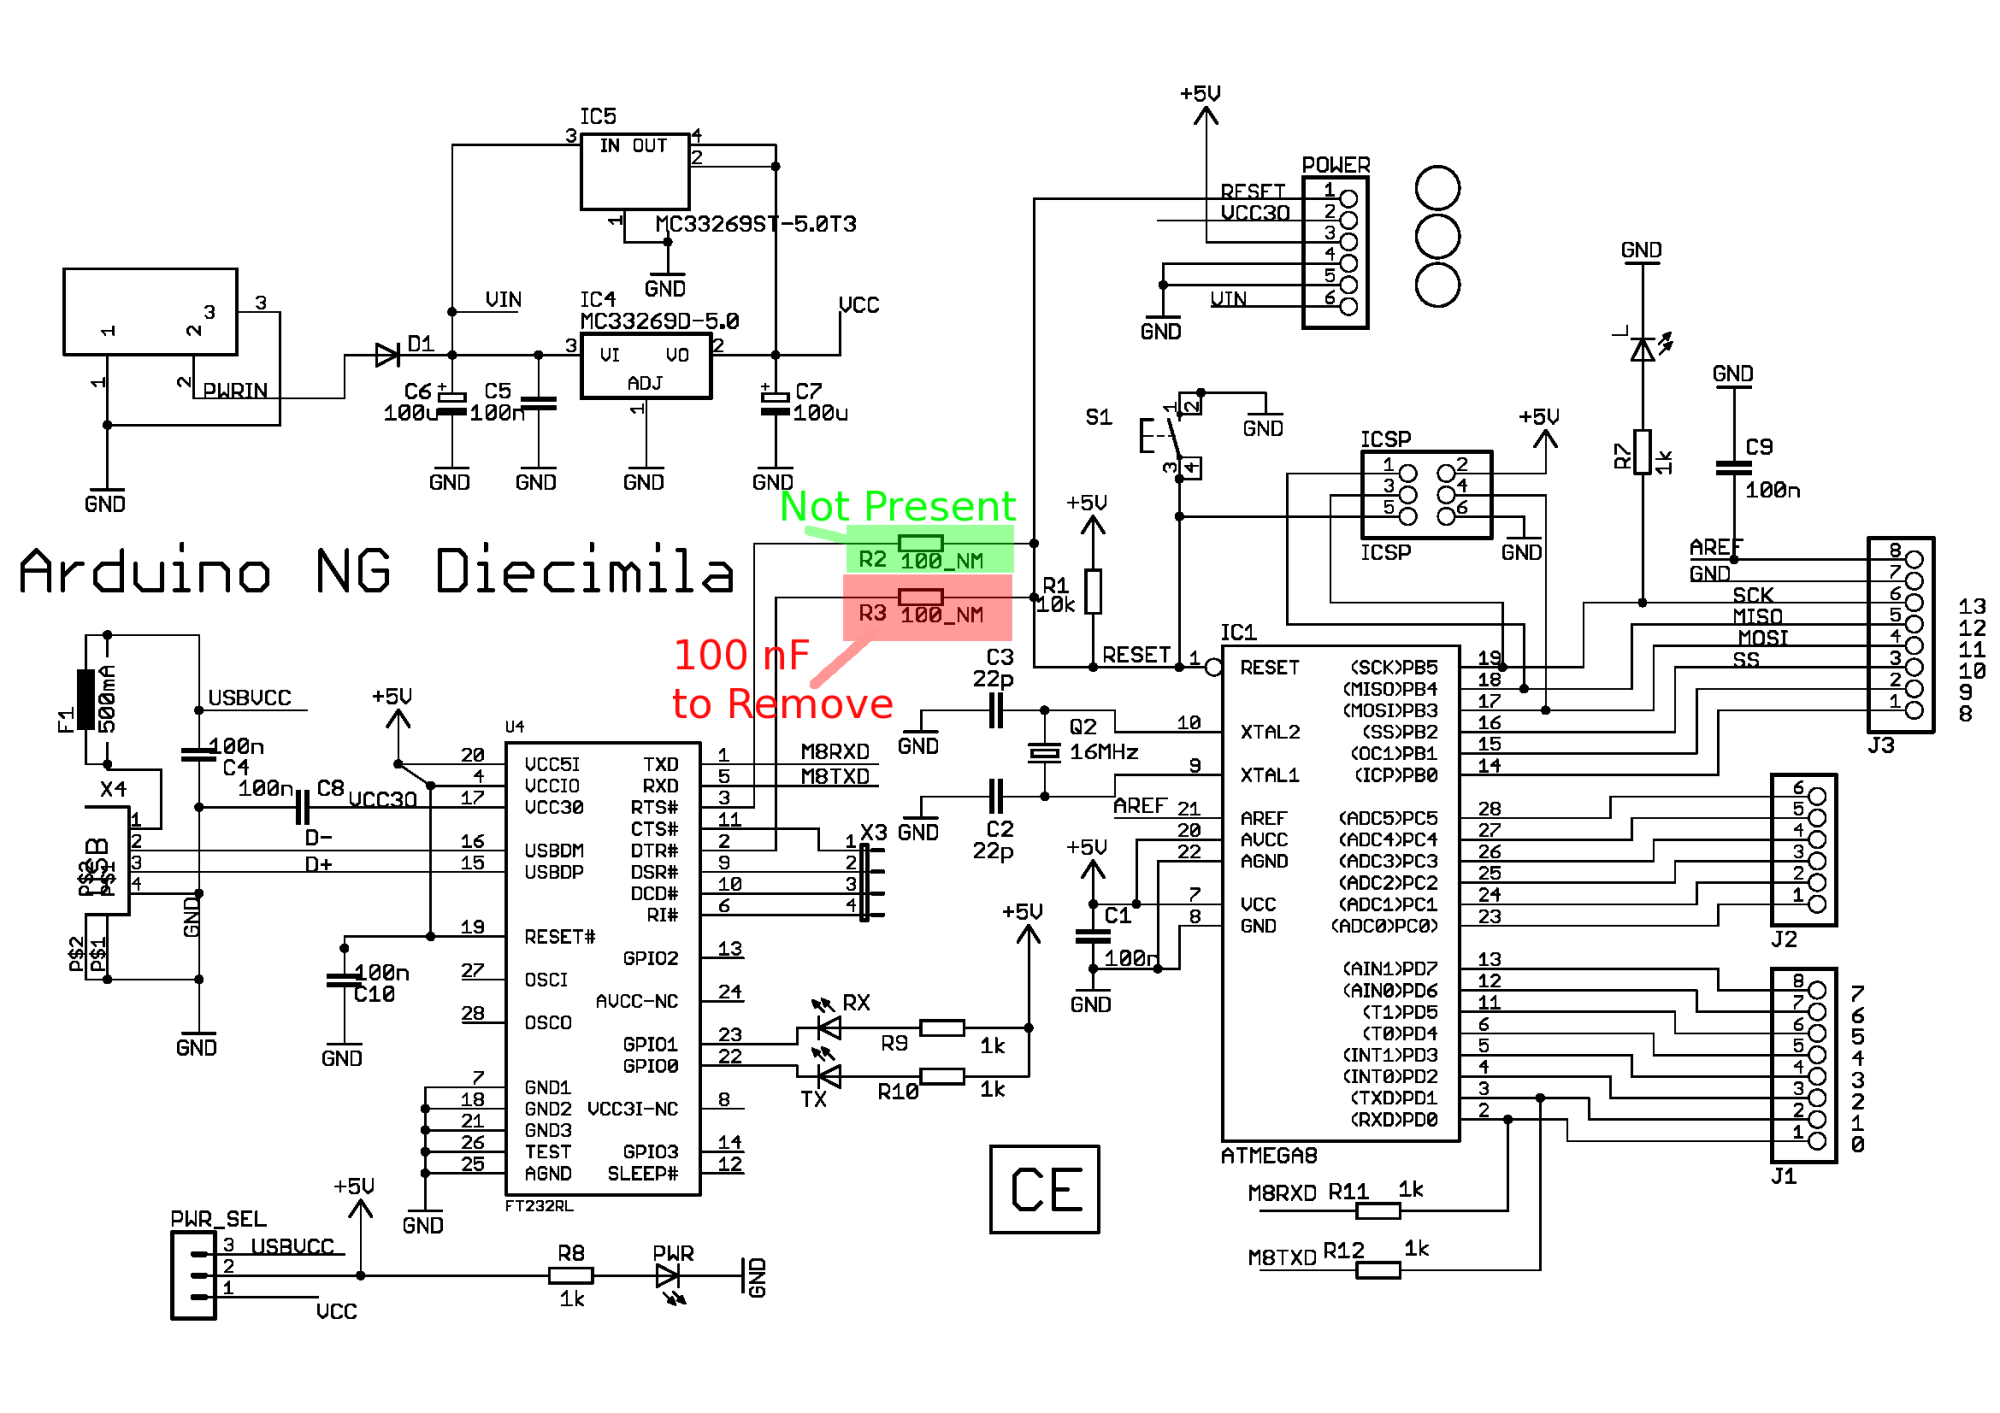 hight resolution of this is for an arduino diecimilia board